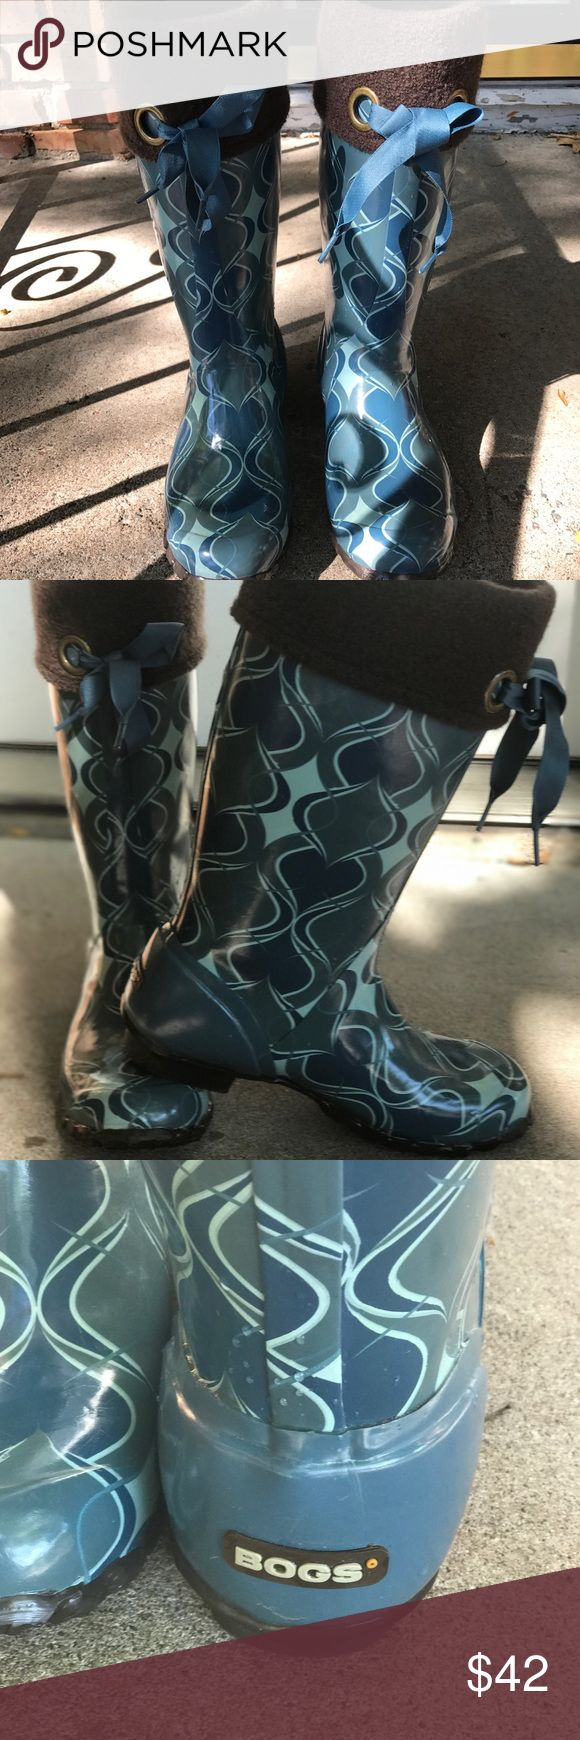 Bogs rain/winter boots Rubber boots in muted blue tones and a harlequin pattern. These are accented and lined with brown boiled wool and are very warm Bogs Shoes Winter & Rain Boots